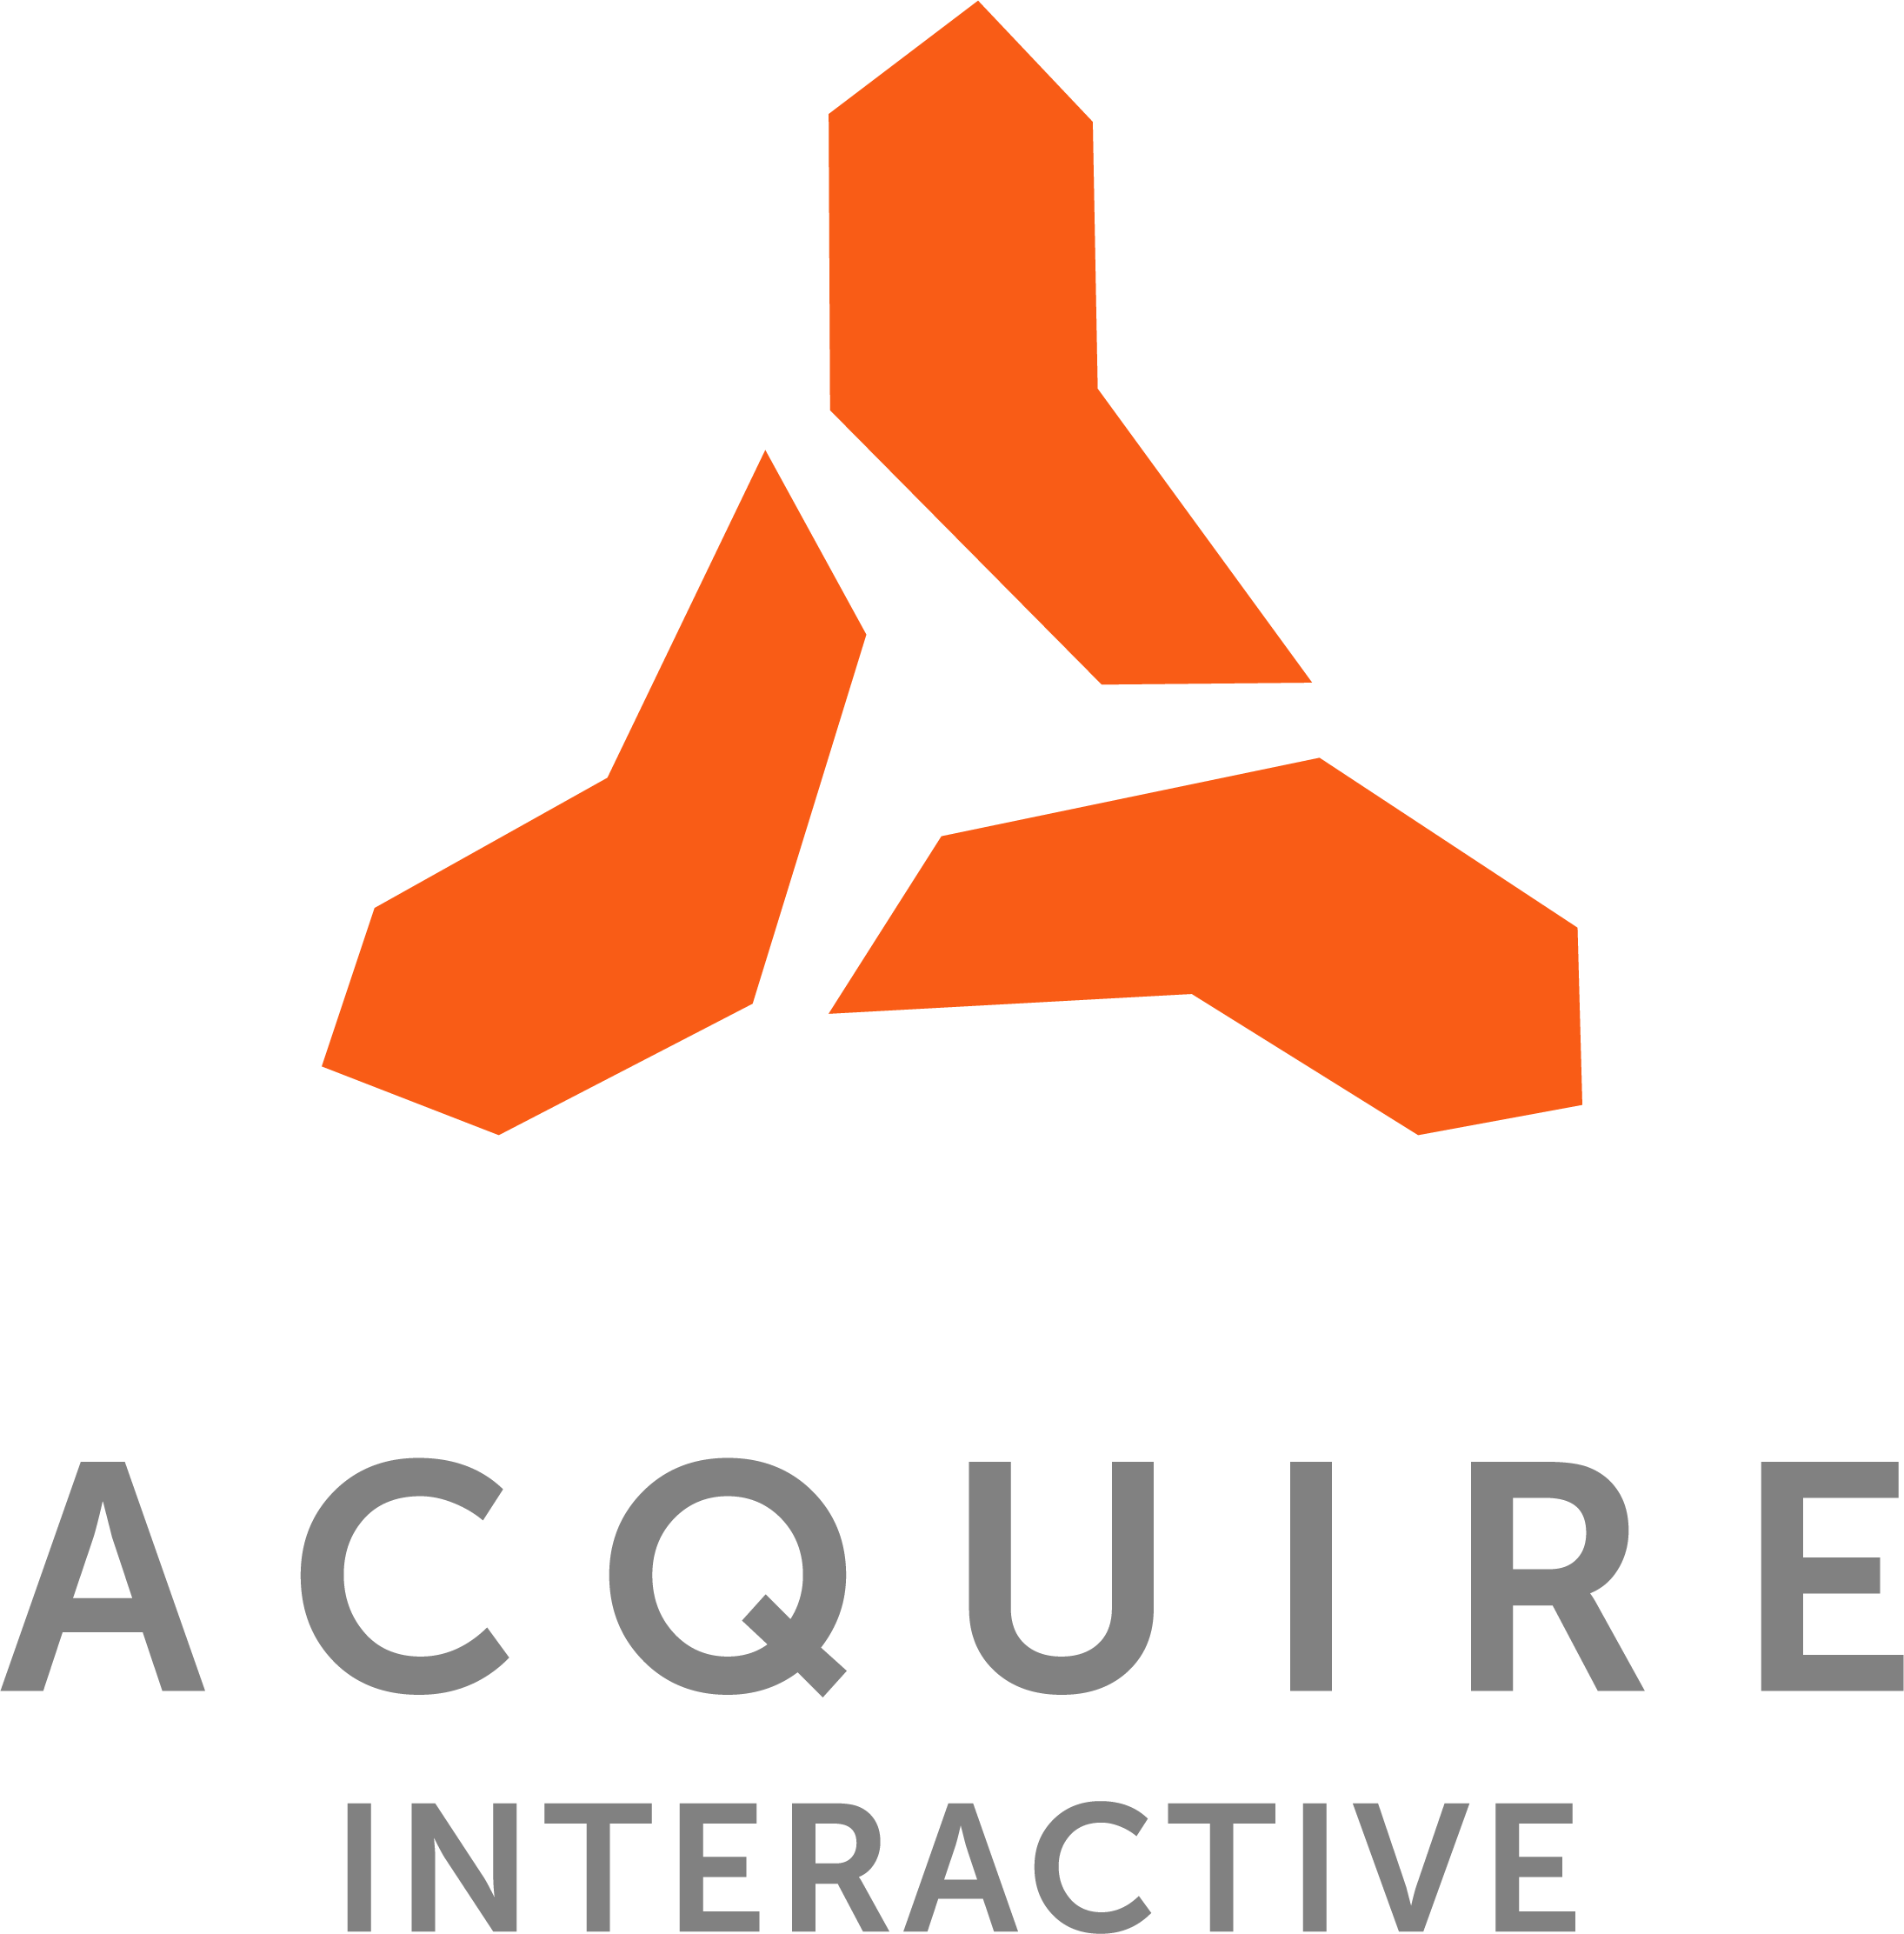 Acquire Interactive